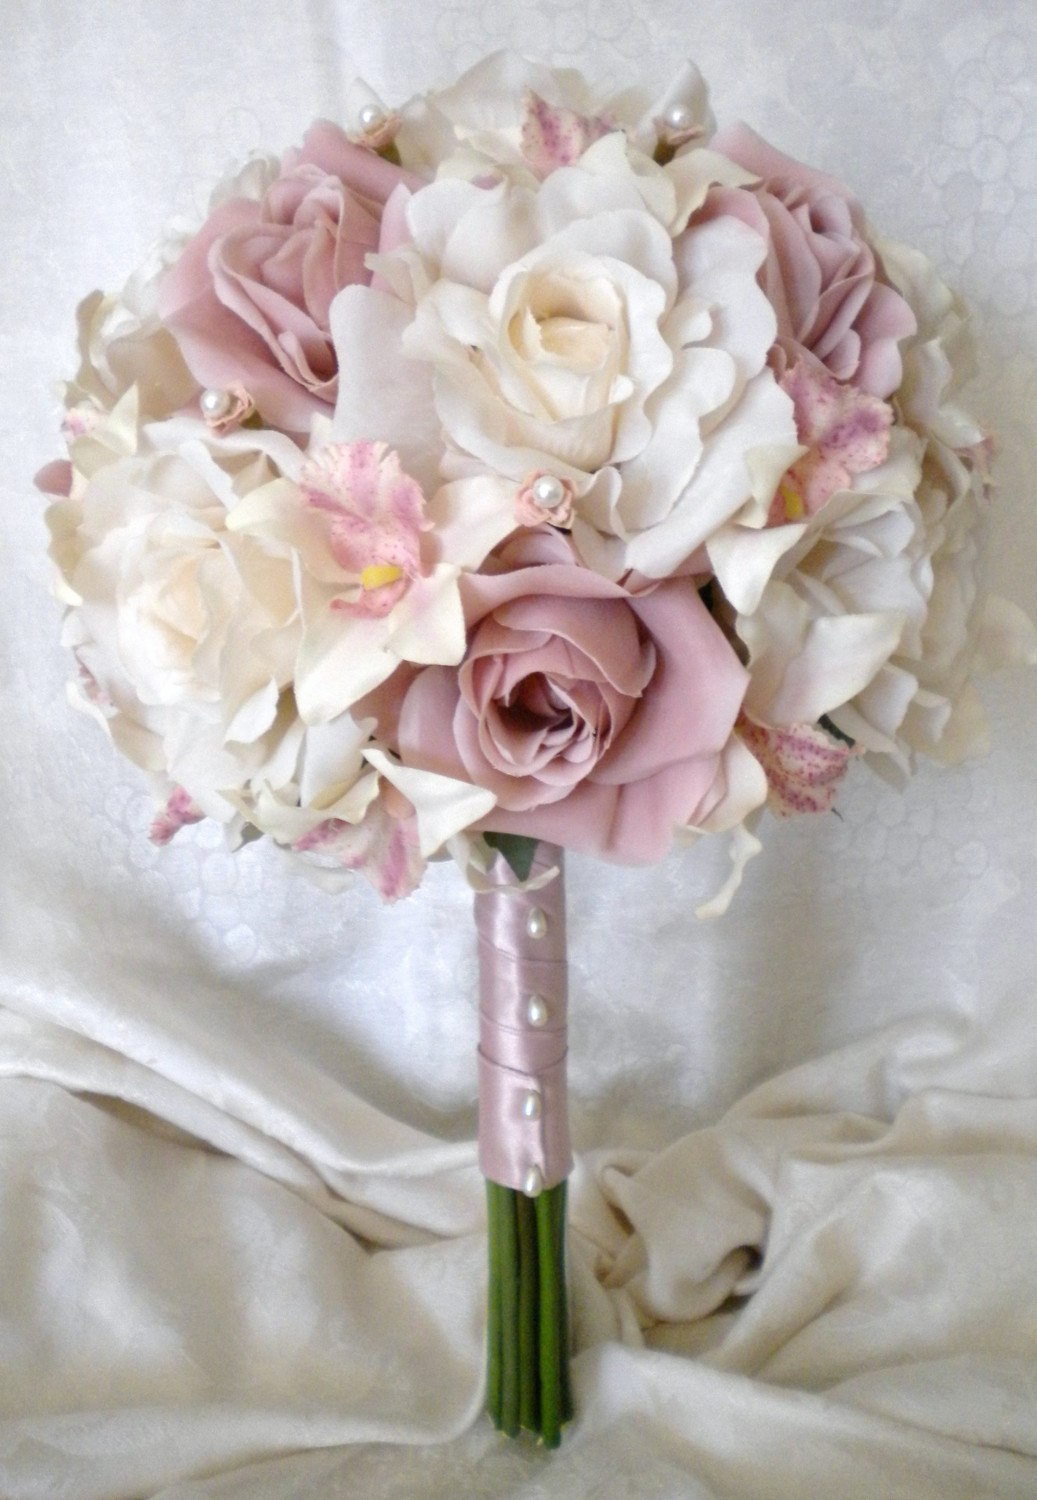 Mauve and ivory wedding inspiration the merry bride for Wedding flowers ideas pictures